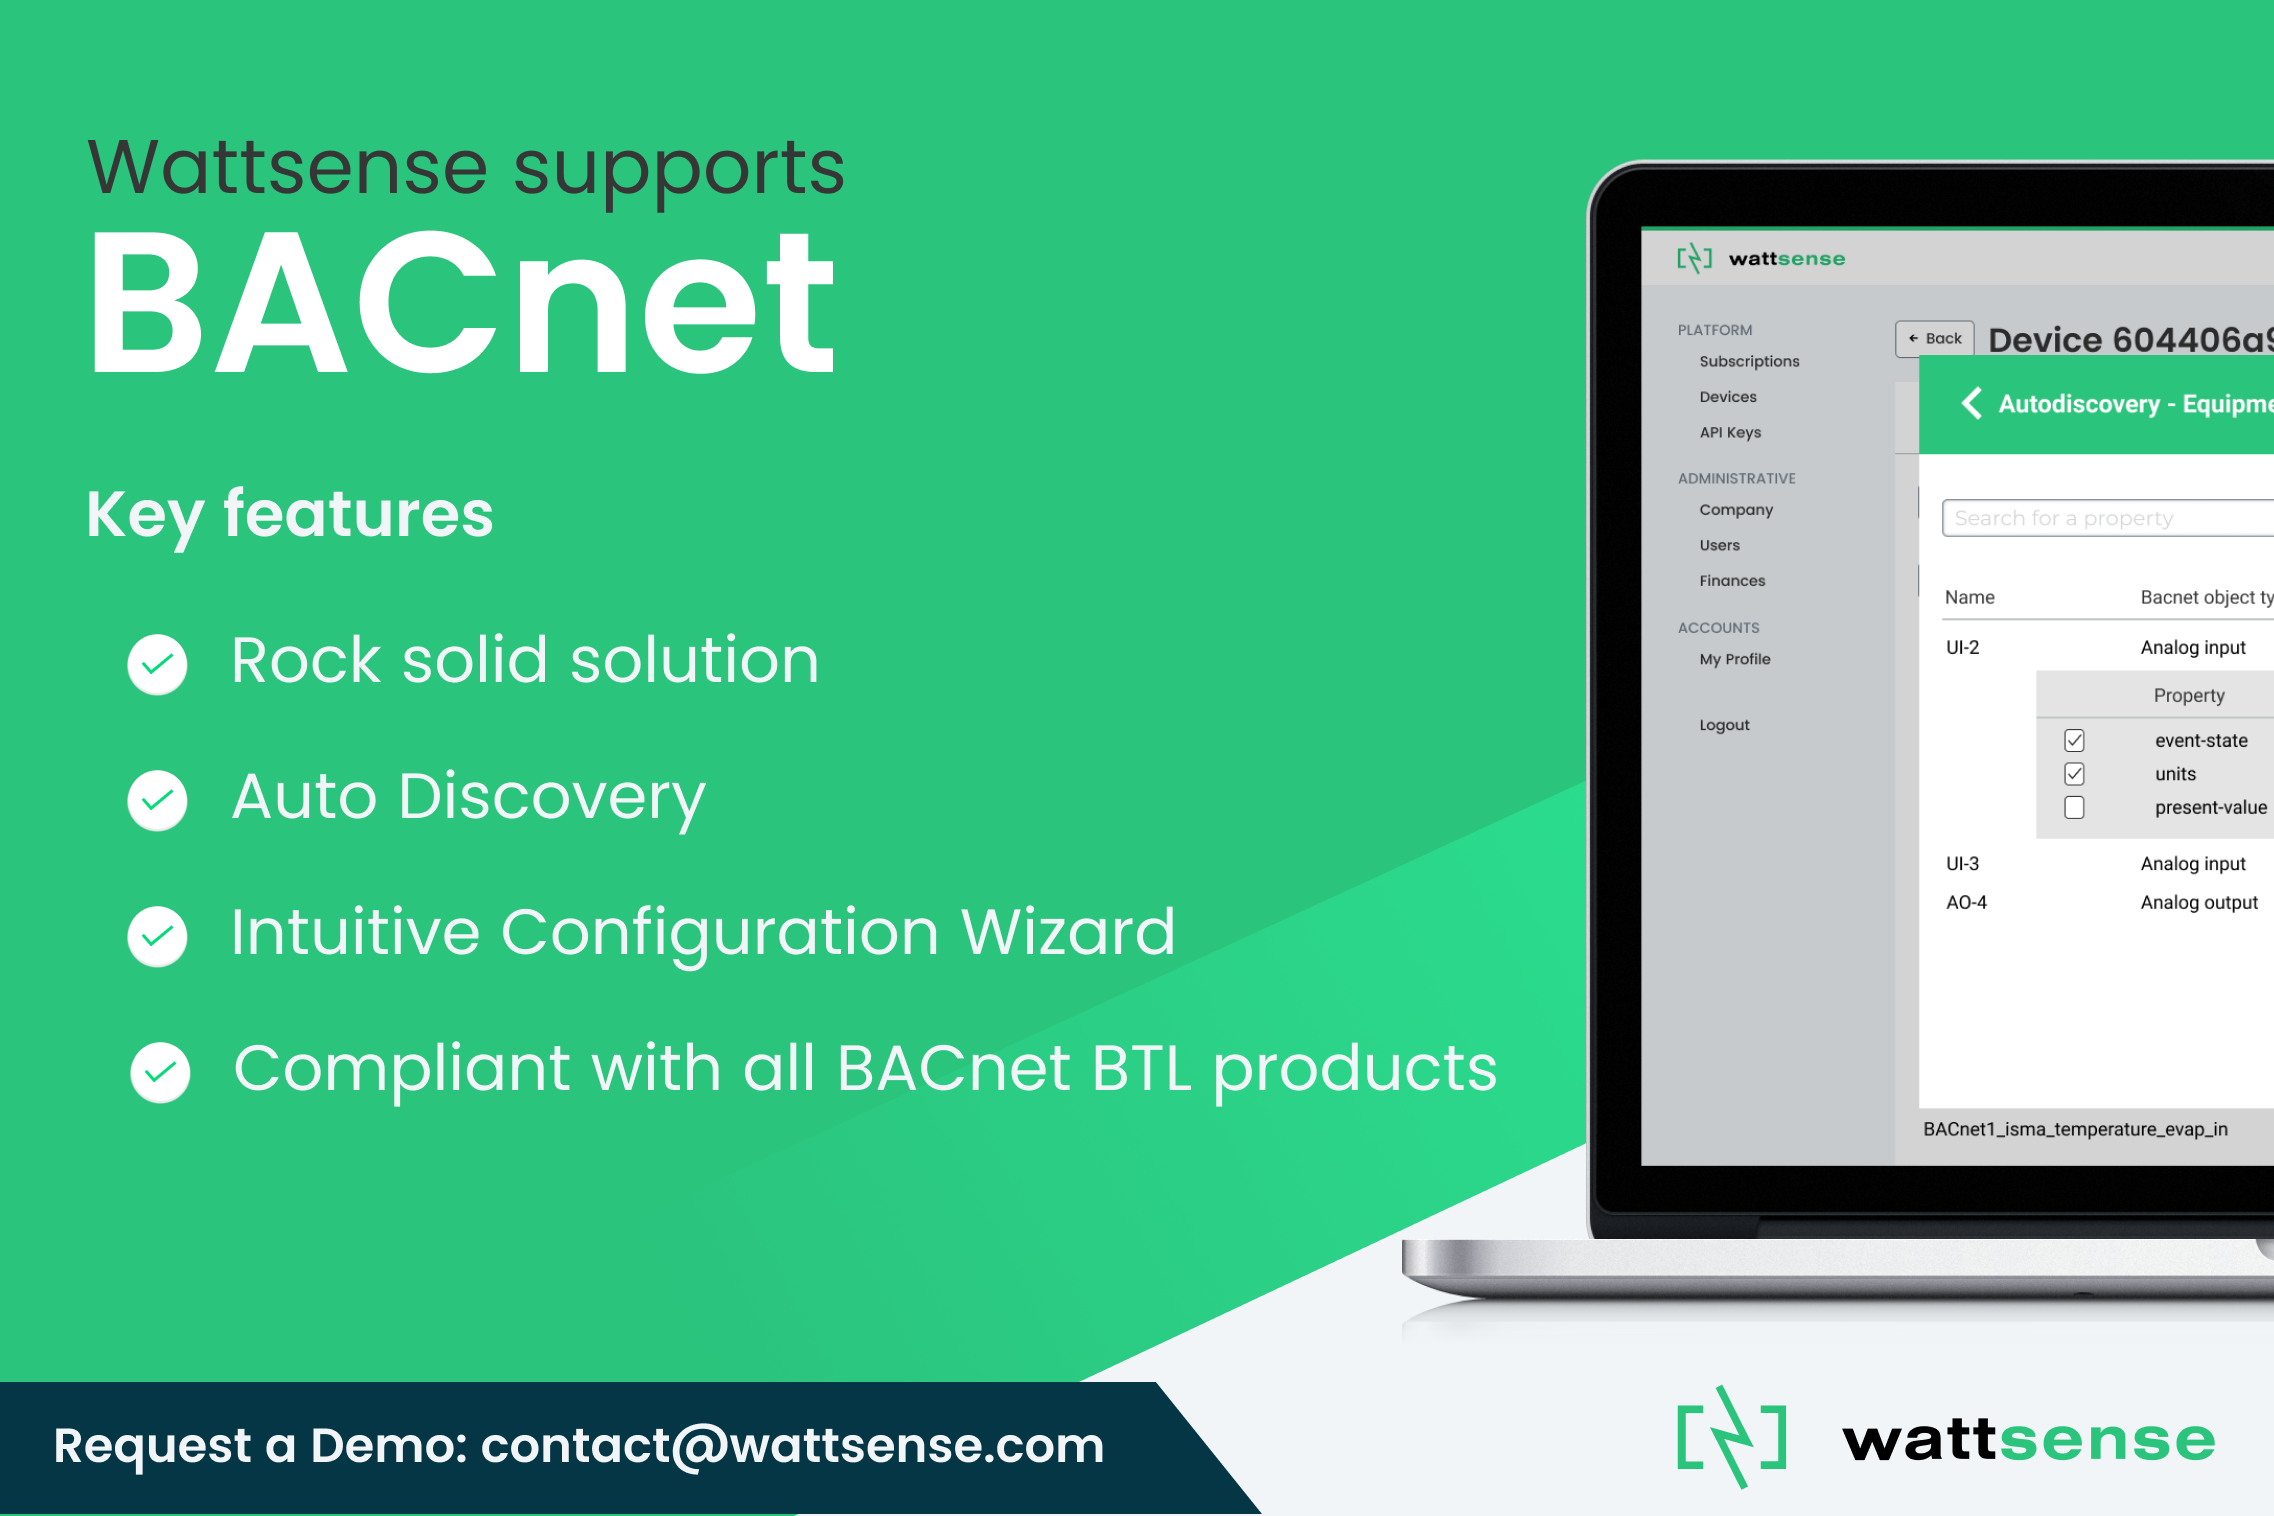 Breaking news: Wattsense supports BACnet